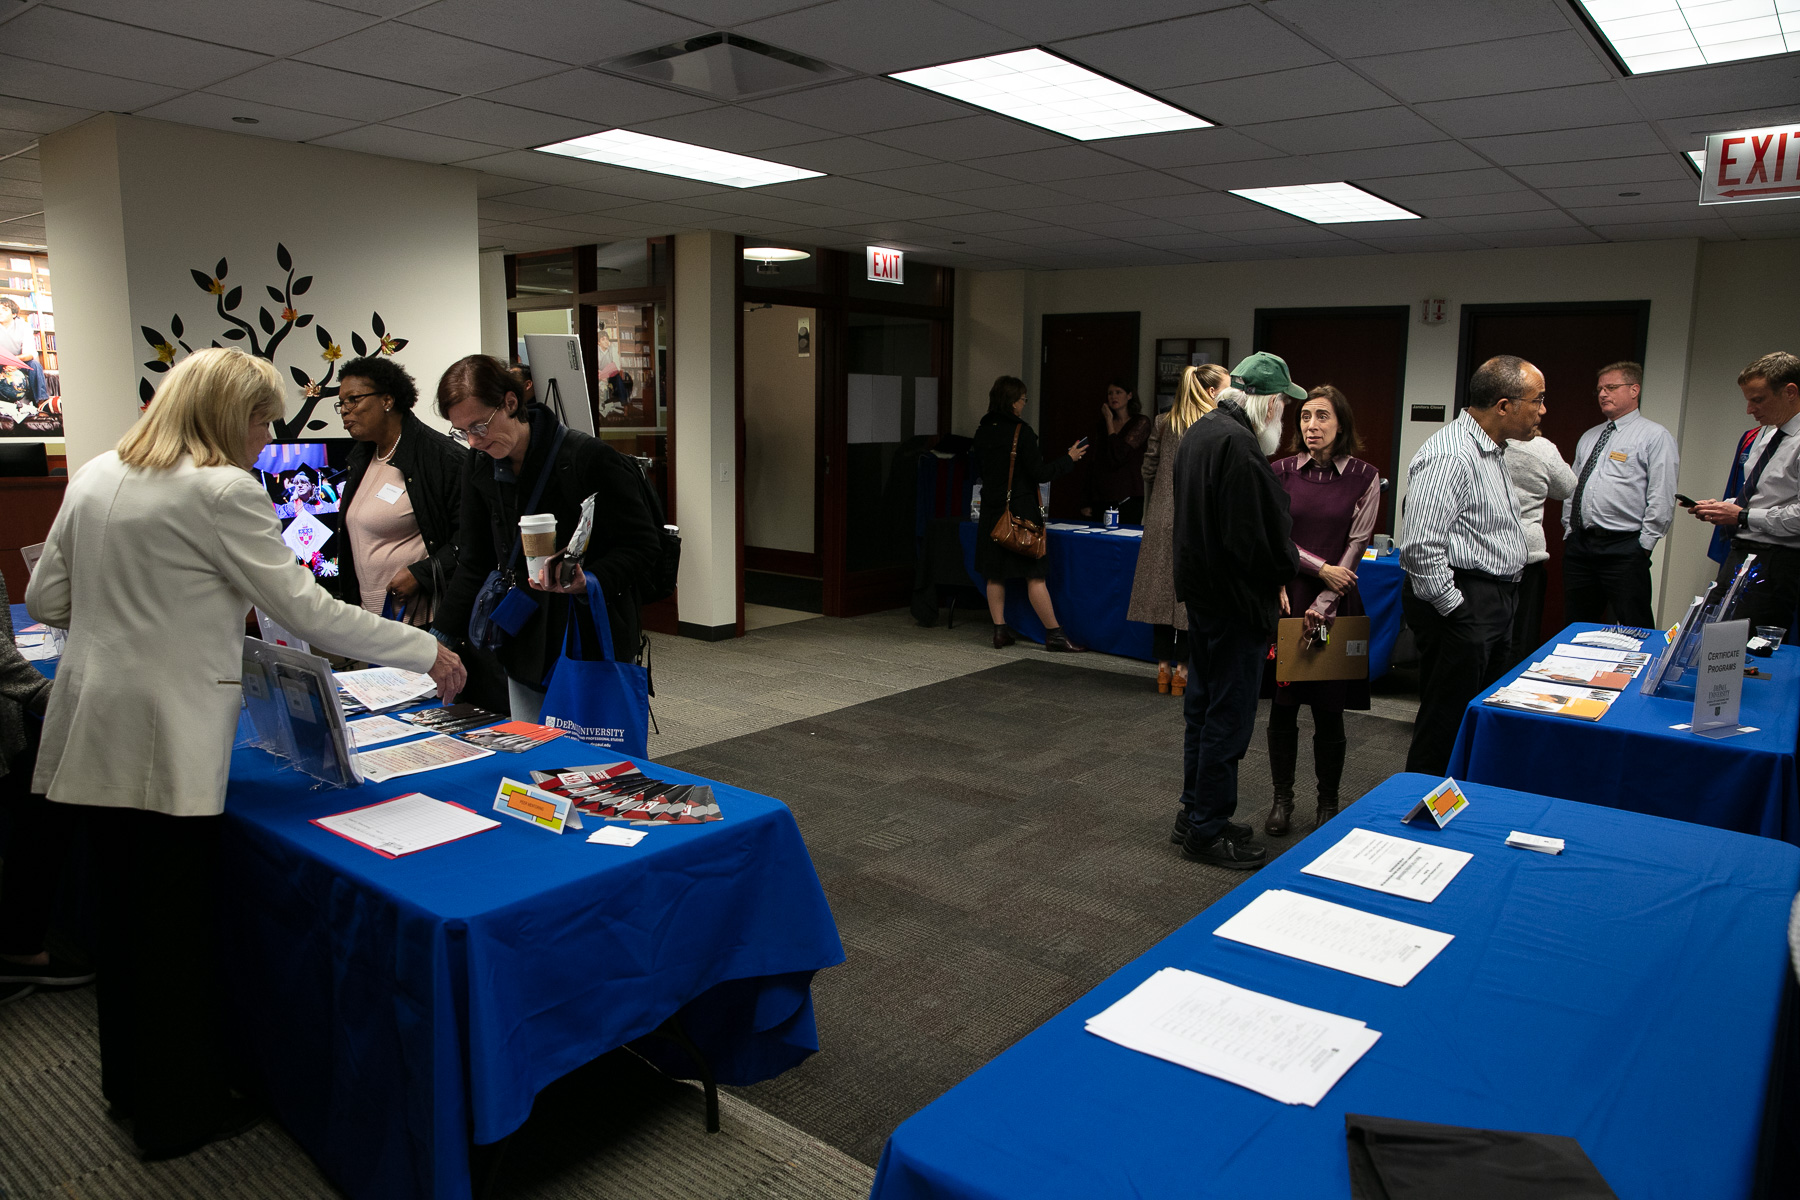 The School of Continuing and Professional Studies hosts its Fall Open House, Thursday, Oct. 17, 2019, at the Richard M. and Maggie C. Daley Building in DePaul's Loop Campus. (DePaul University/Randall Spriggs)